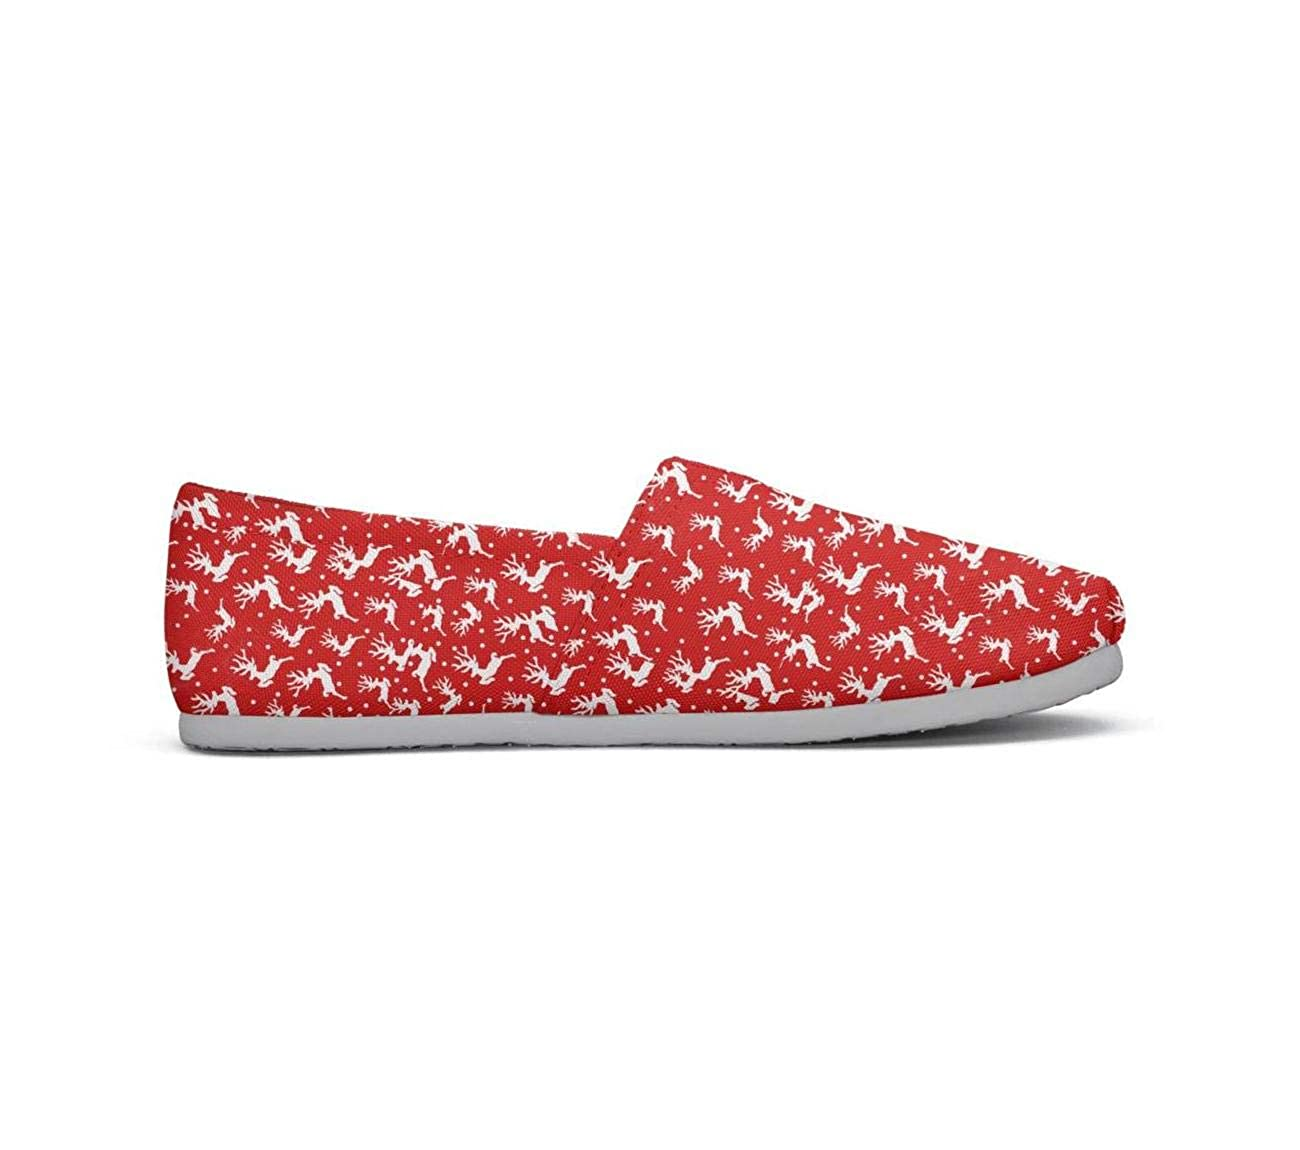 Reindeer Star with Red Scarf Casual Womens Comfort Flat Boat Shoes Girls Espadrille Flats